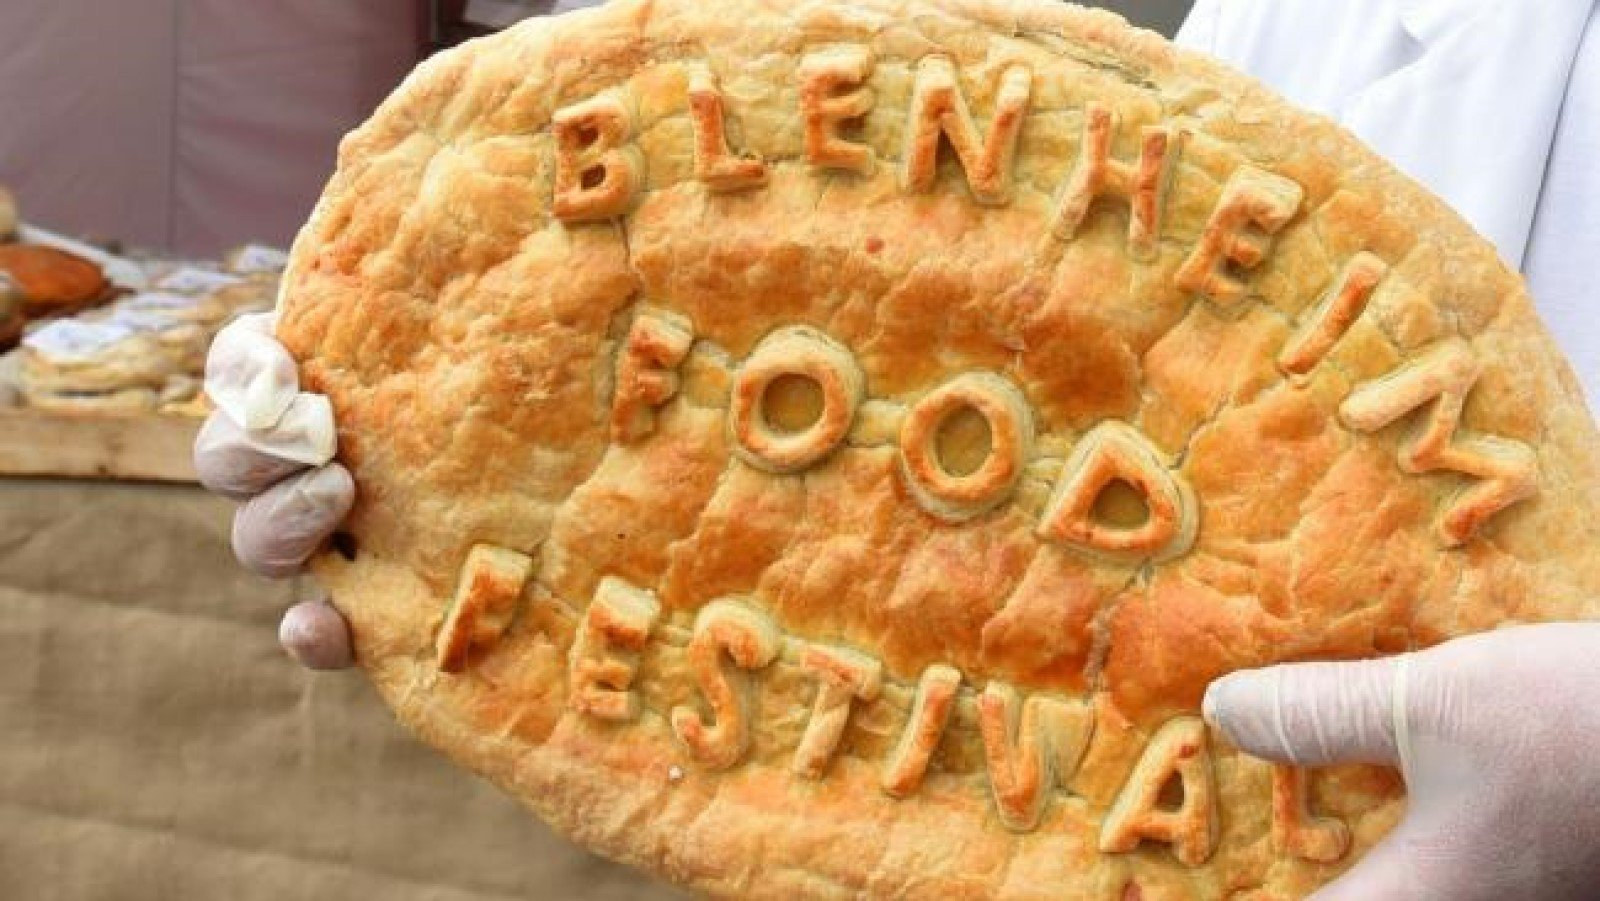 Blenheim Palace to host sixth annual food festival